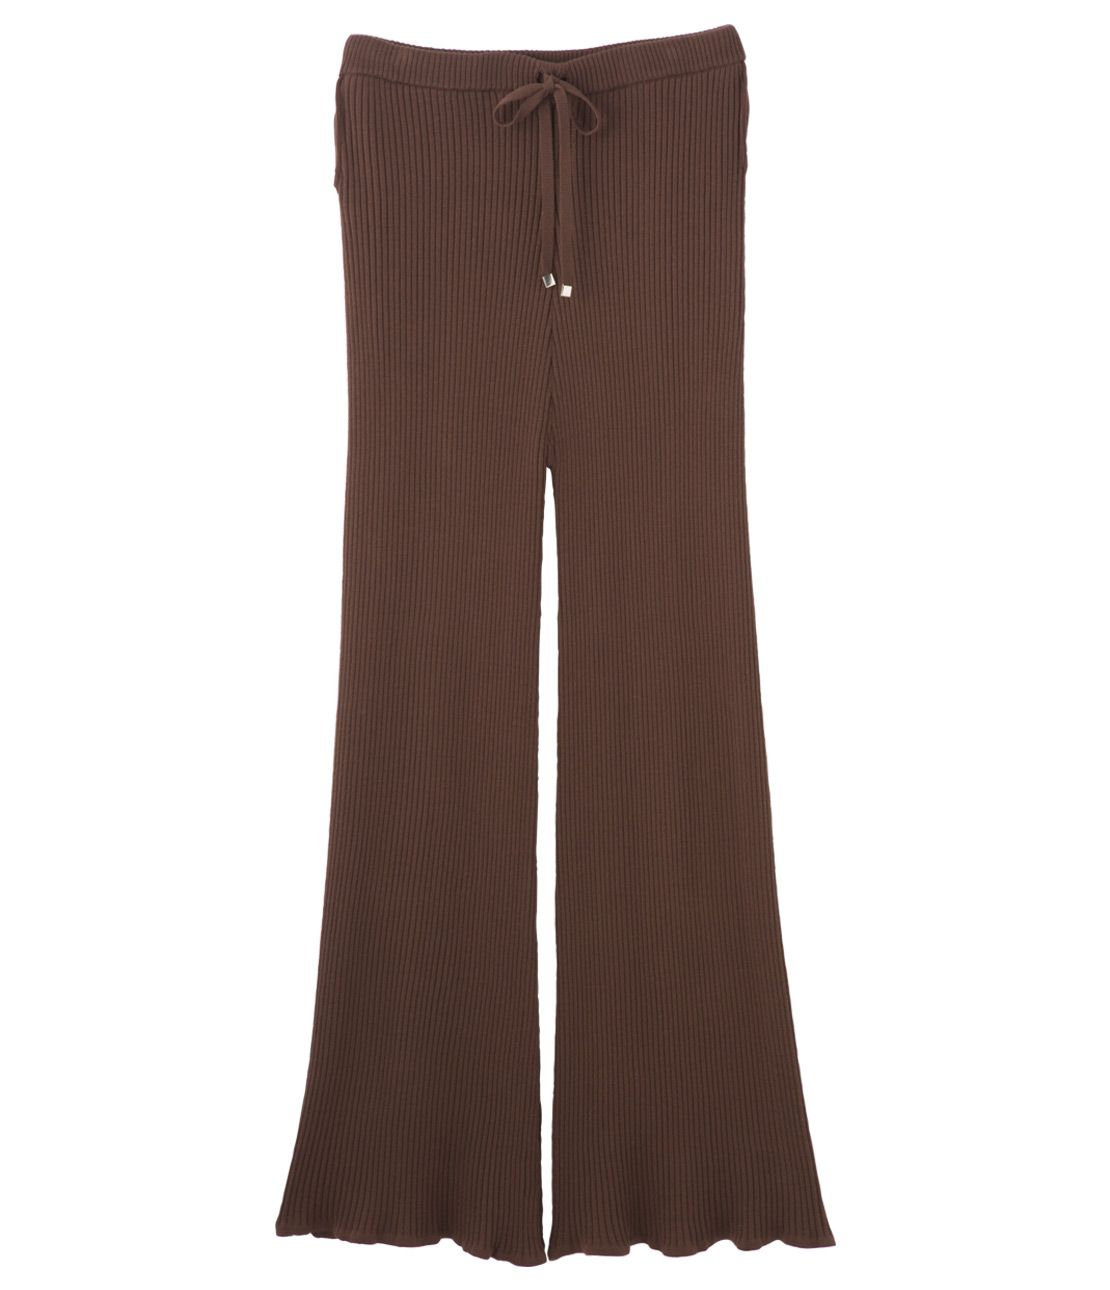 Rib knit wide pants